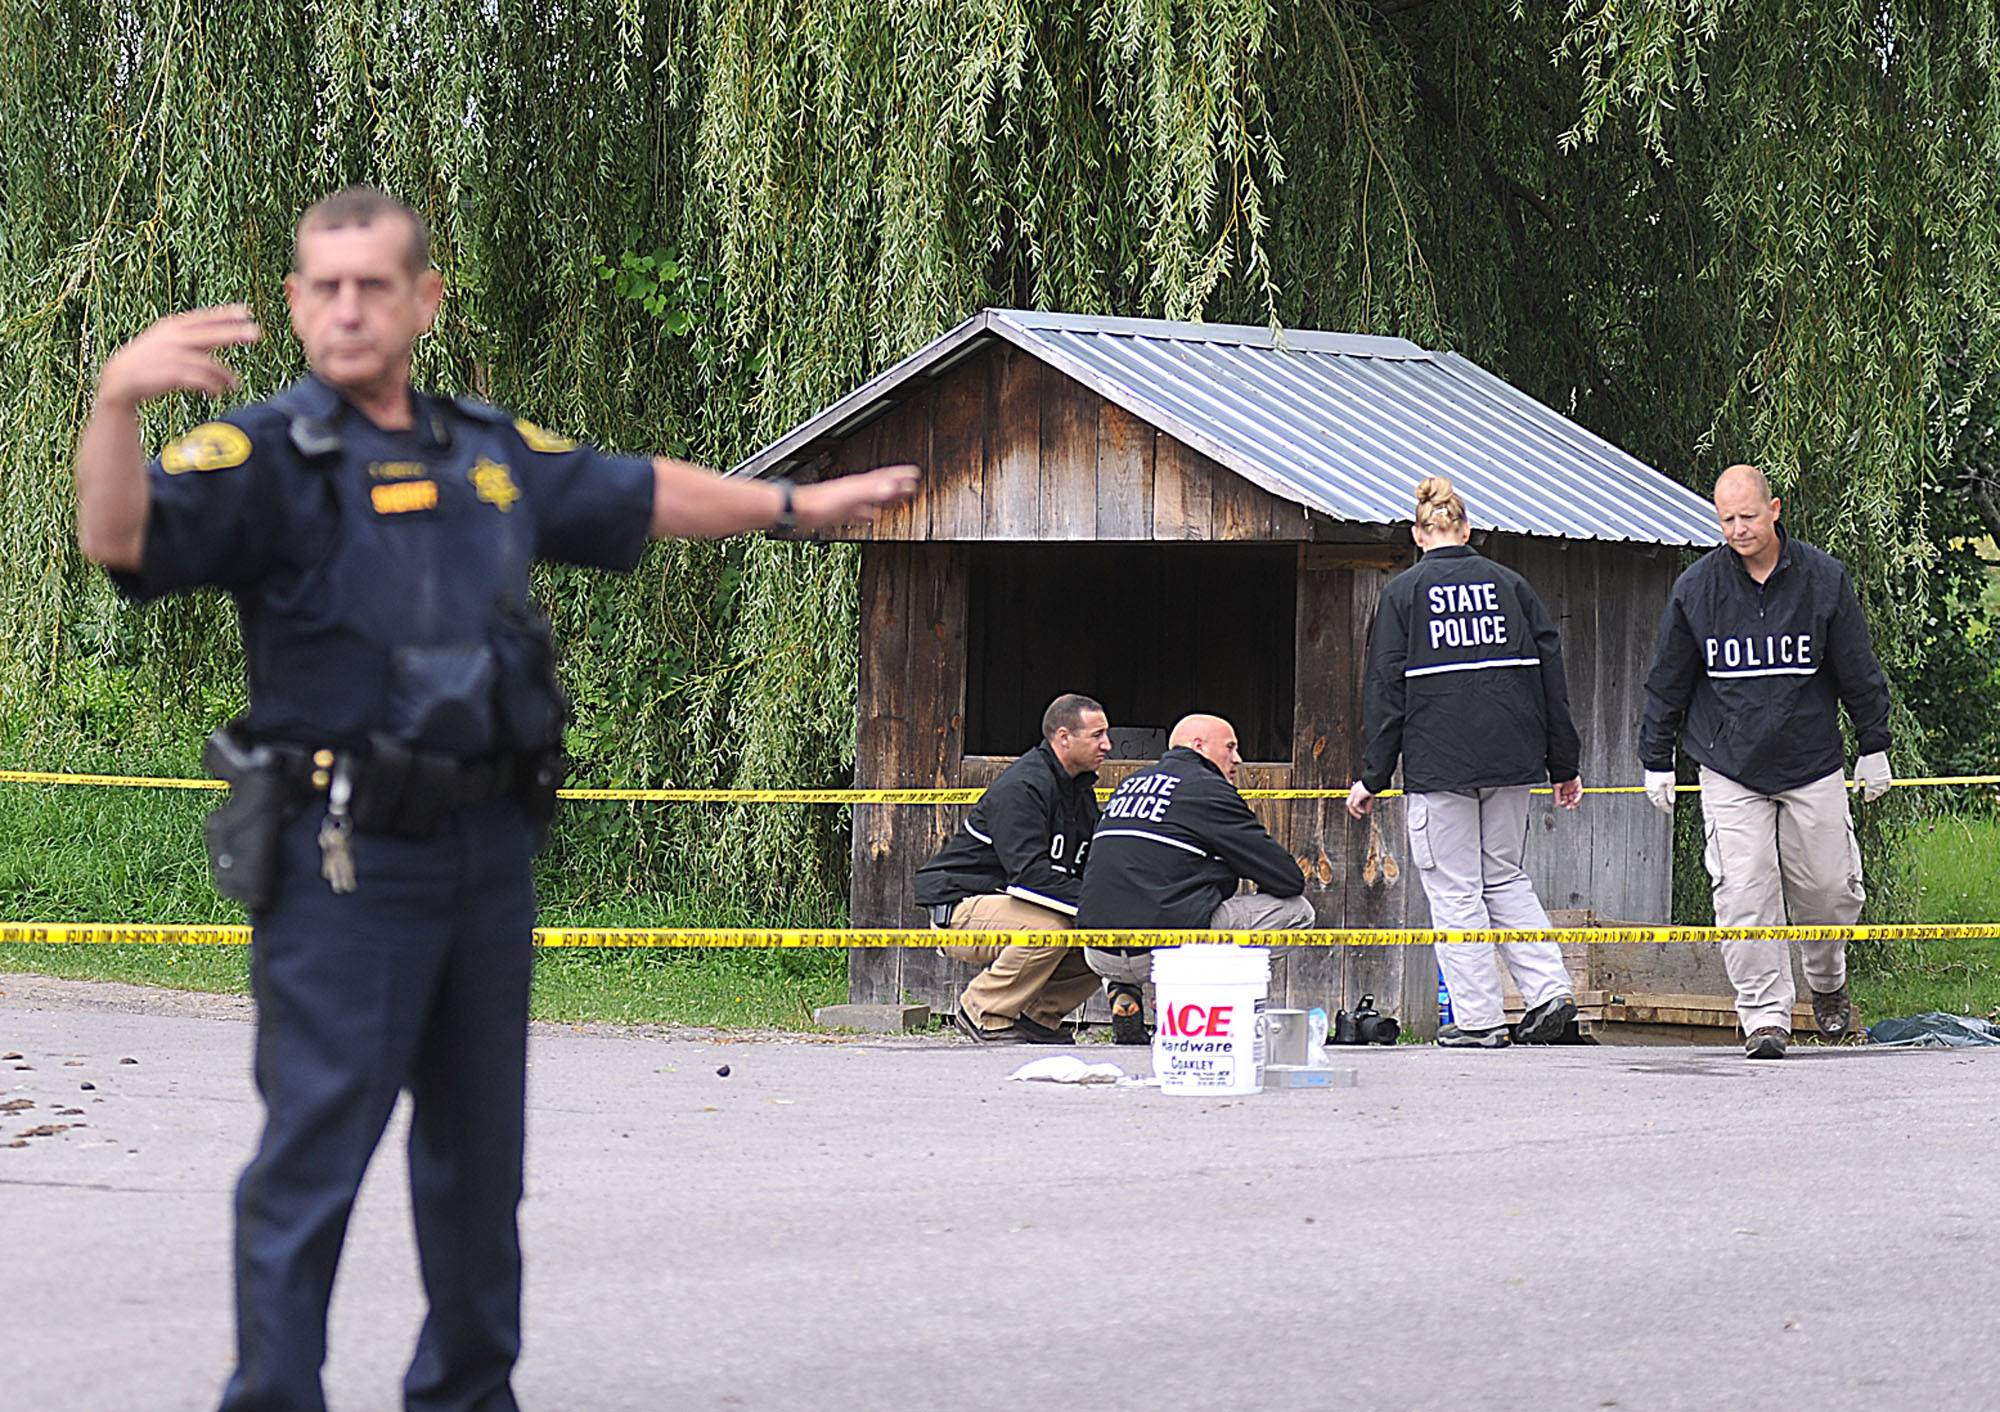 New York State Police crime scene investigators search for clues Thursday at a roadside vegetable stand in Oswegatchie, N.Y.